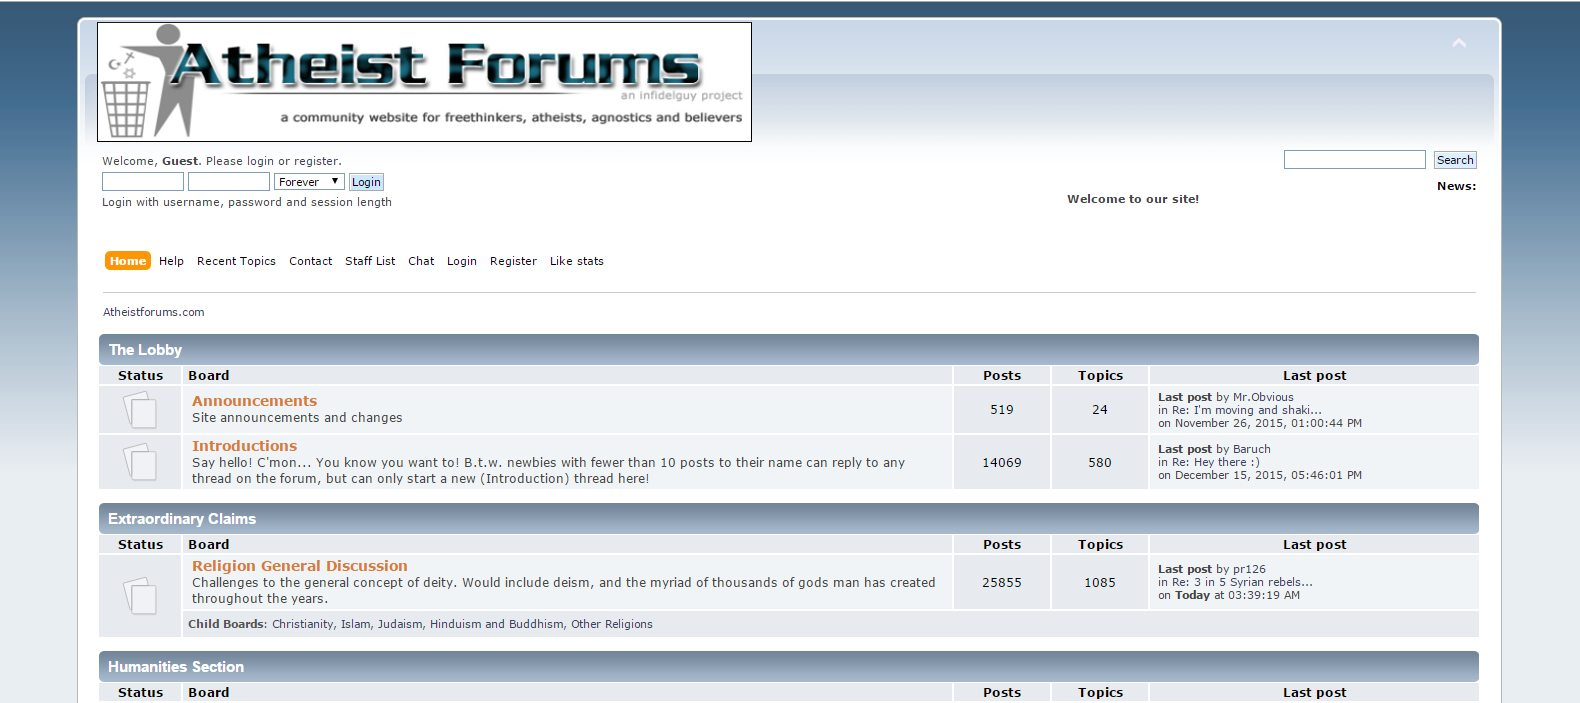 Atheist Forums